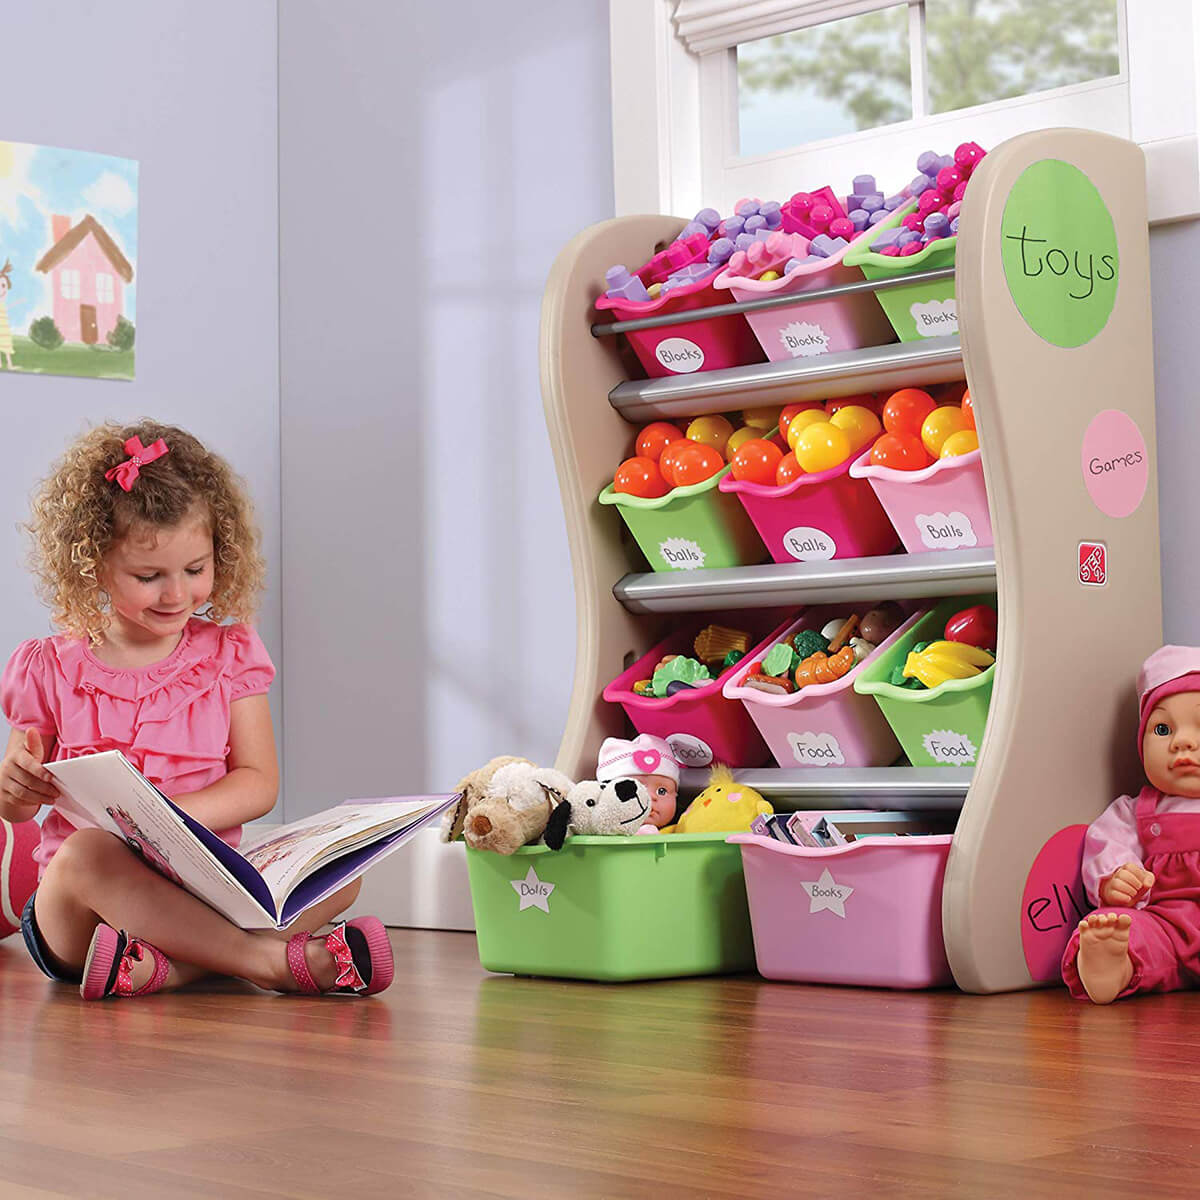 Sturdy Pink and Green Storage Bins